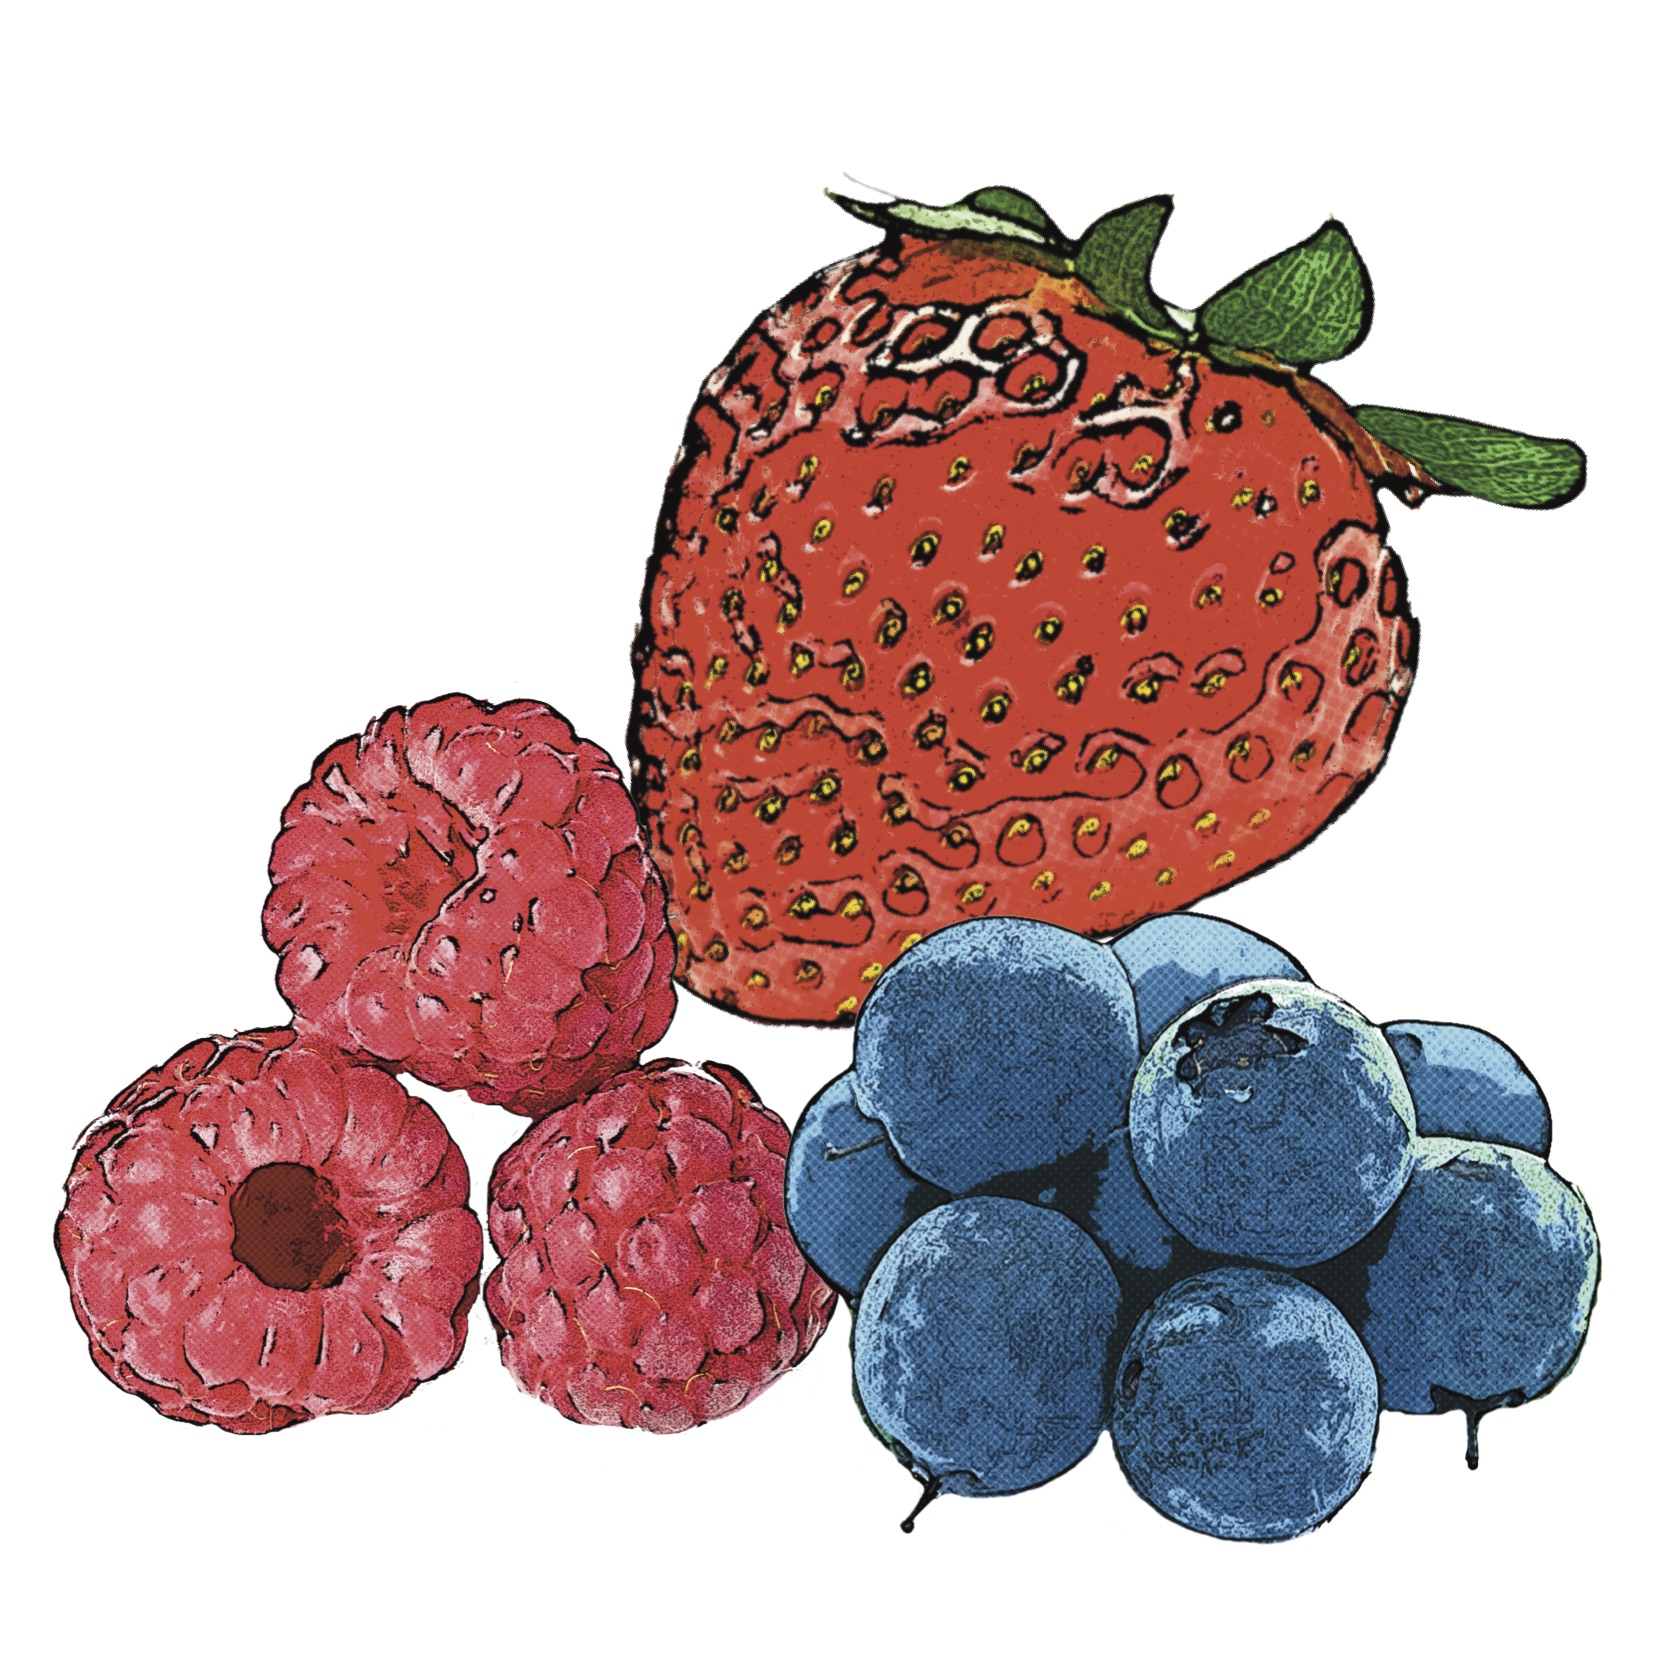 Find Berry Recipes